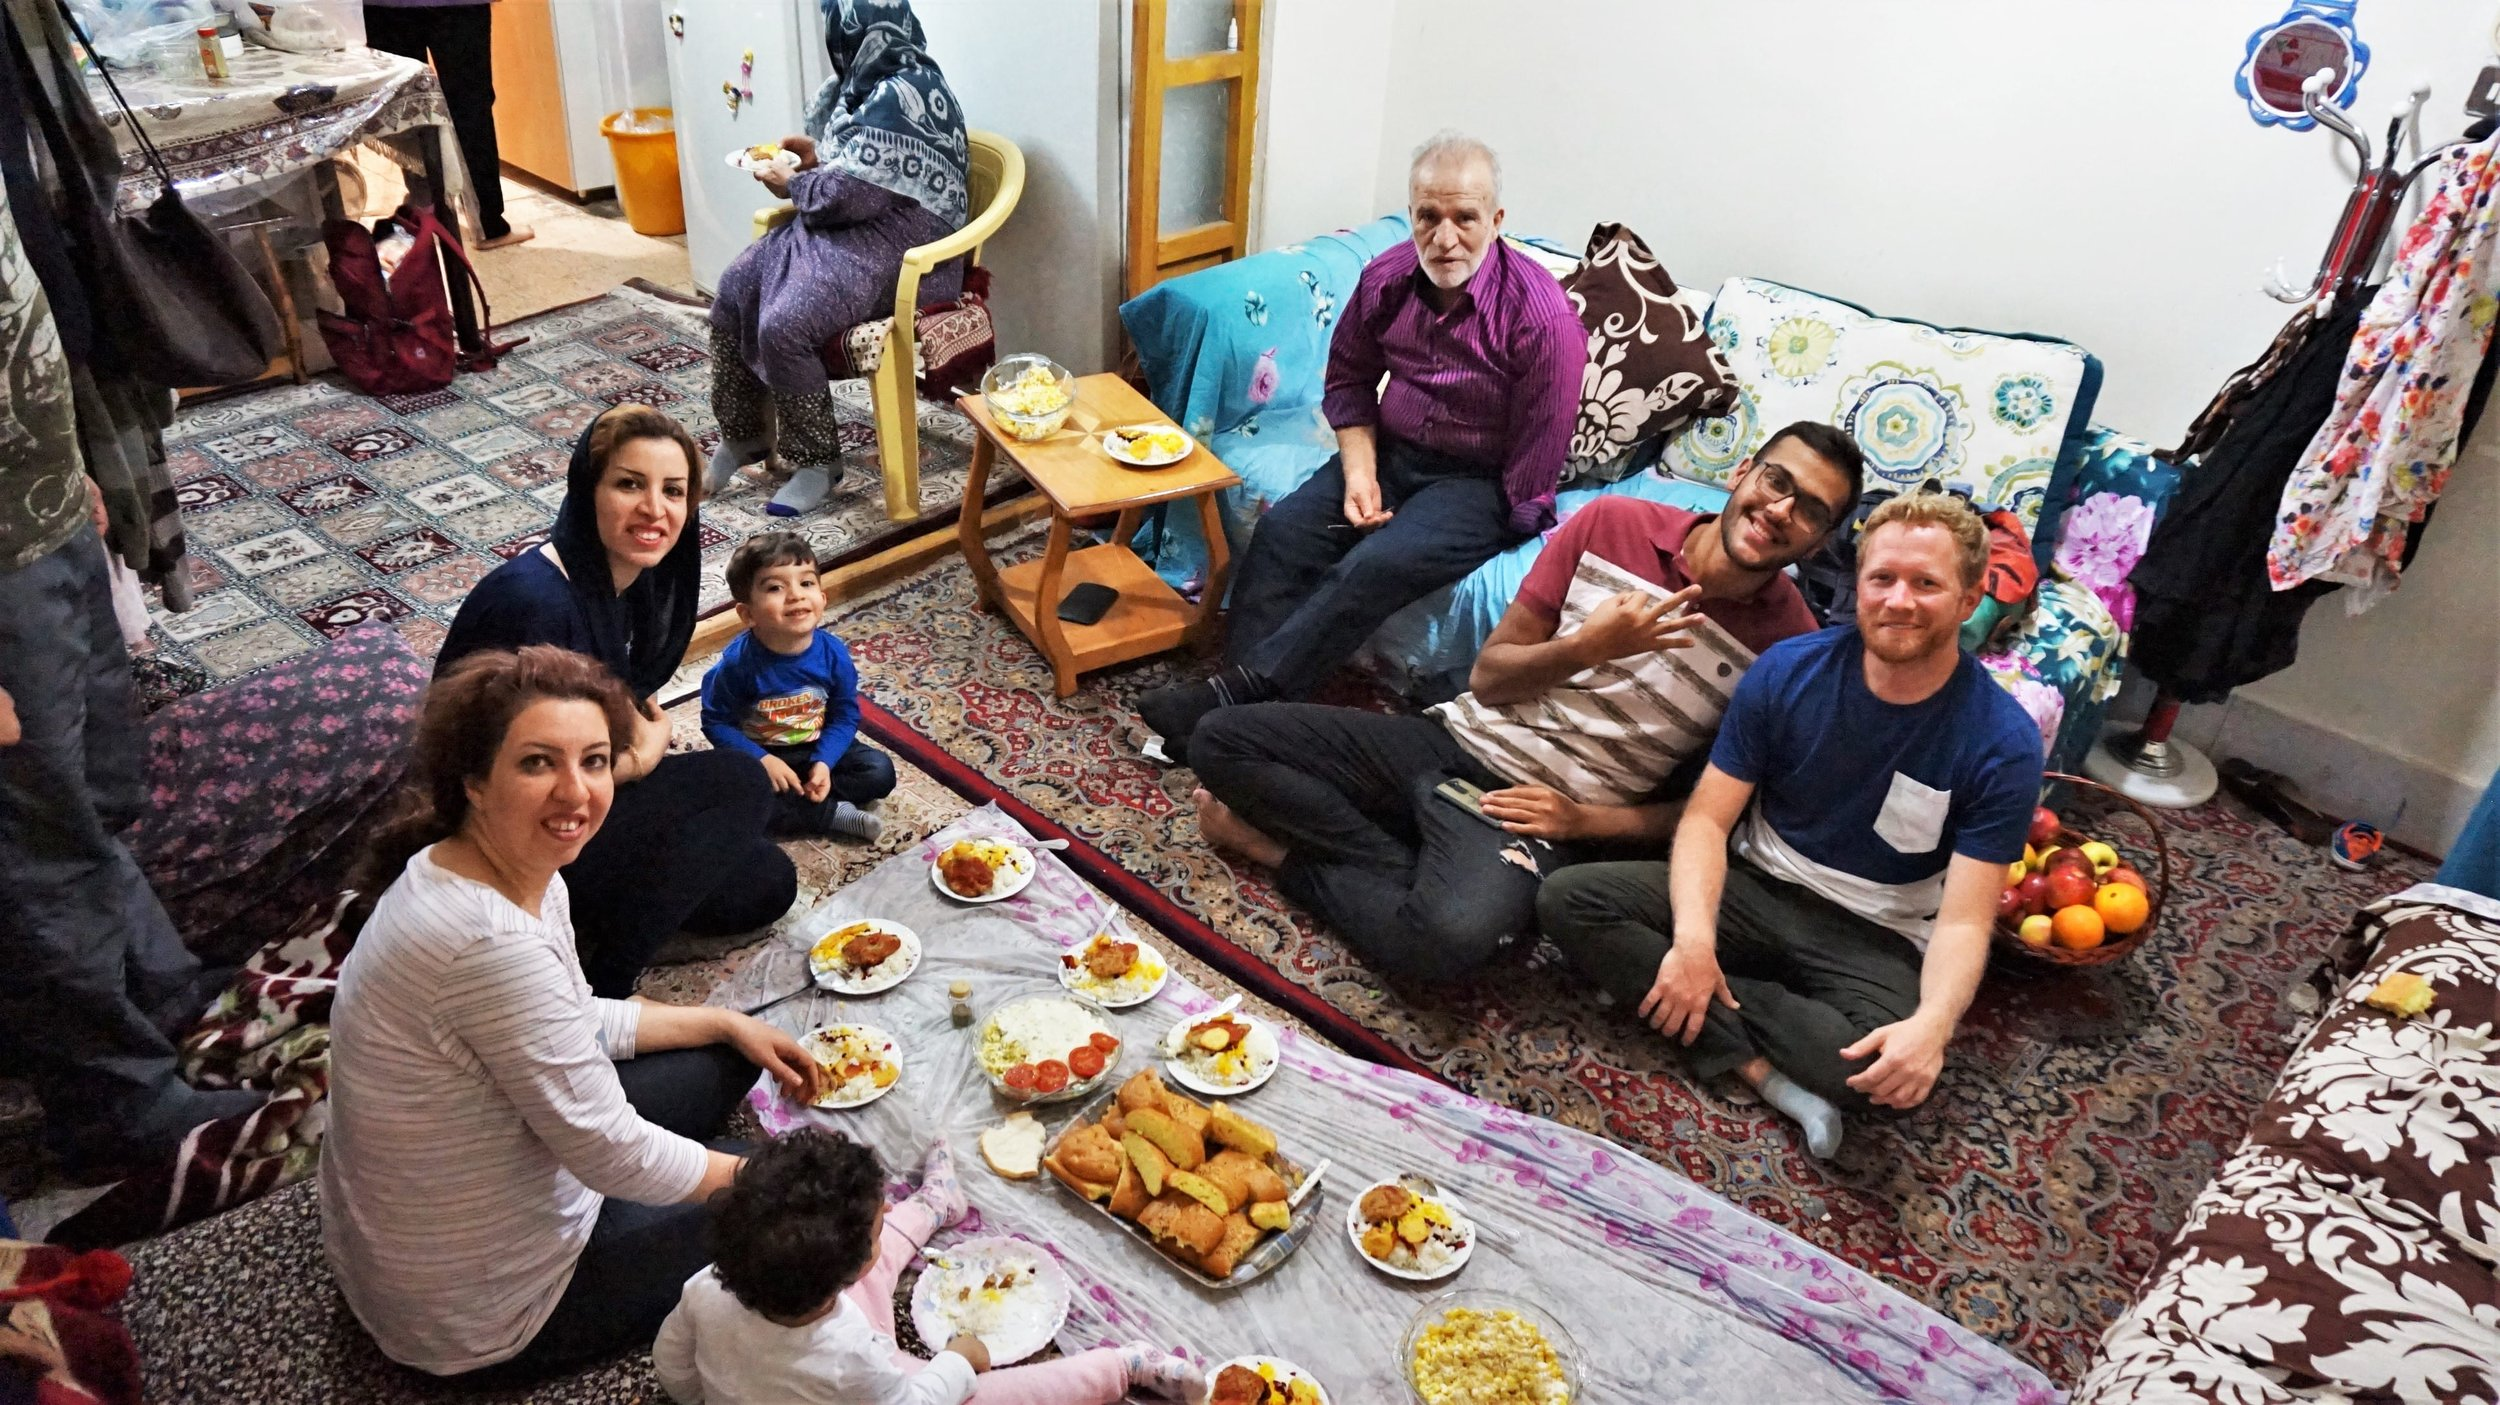 Dinner with one of our couchsurfing hosts in Iran